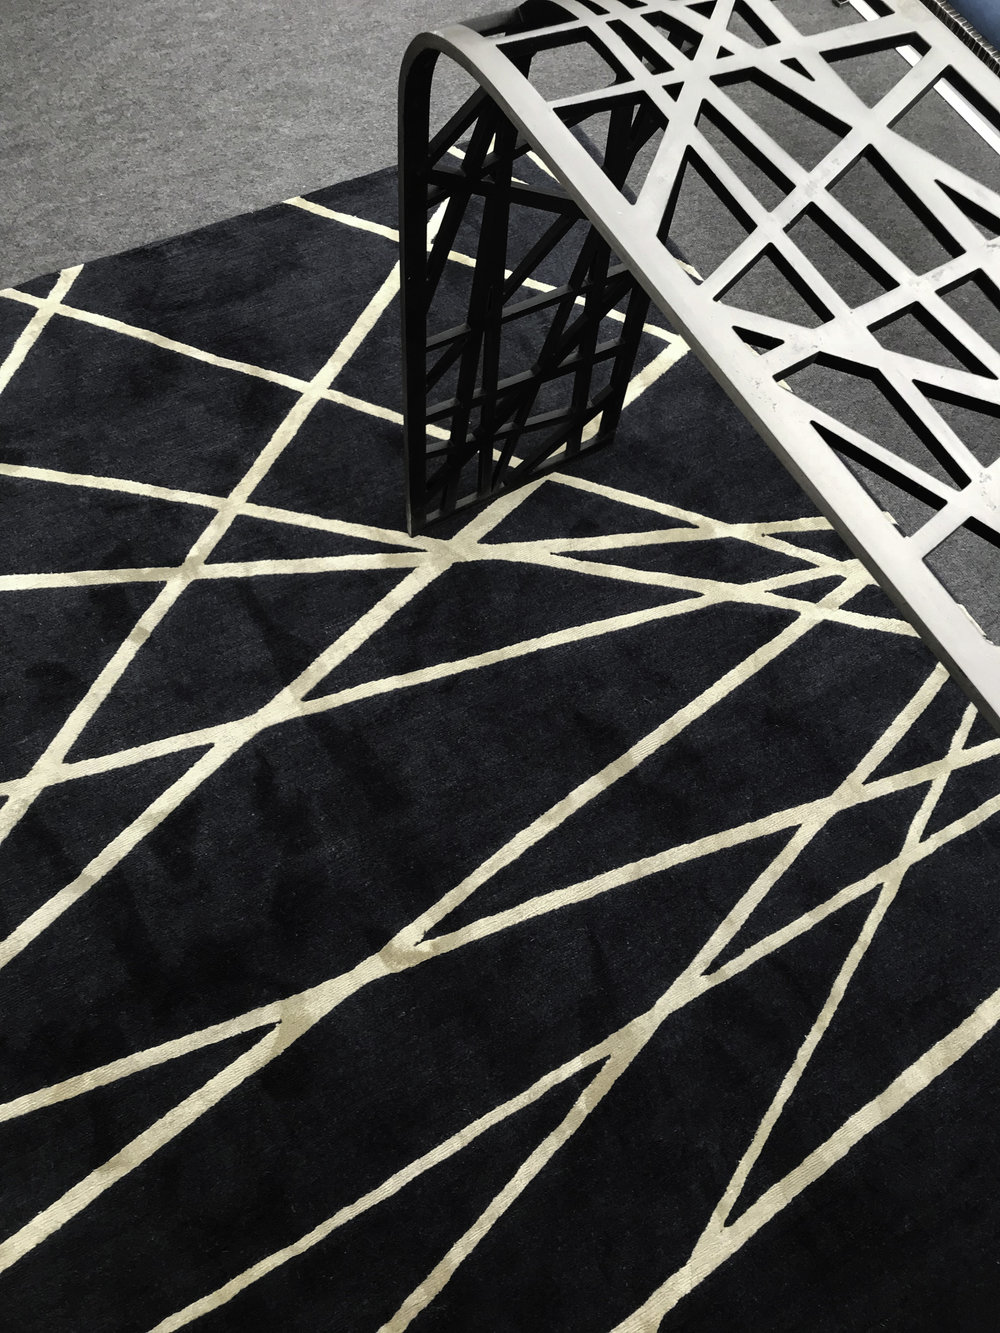 Detail of the  Birds Nest  console table at Decorex International 2018 ©Blackbird Bespoke  Inspired by the National Stadium in Beijing, China,  Birds Nest  is made from laser-cut panels of mild steel, heated and shaped by hand. The underside is hand-painted on purpose in a dark colour to highlight the bold patterned lines.